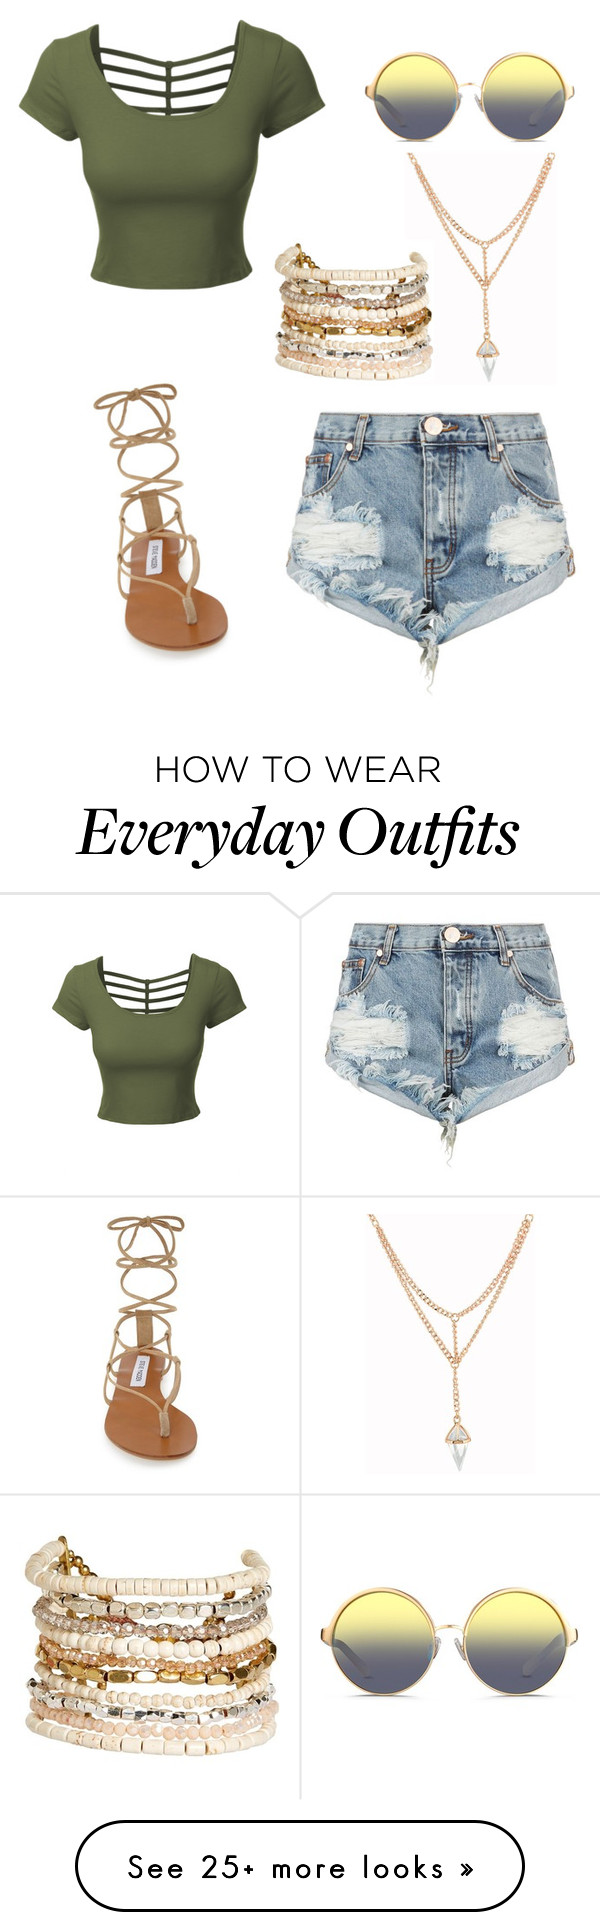 """""""Everyday summer outfit"""" by untoldseecrets on Polyvore featuring LE3NO, One Teaspoon, Matthew Williamson, Steve Madden and Panacea"""